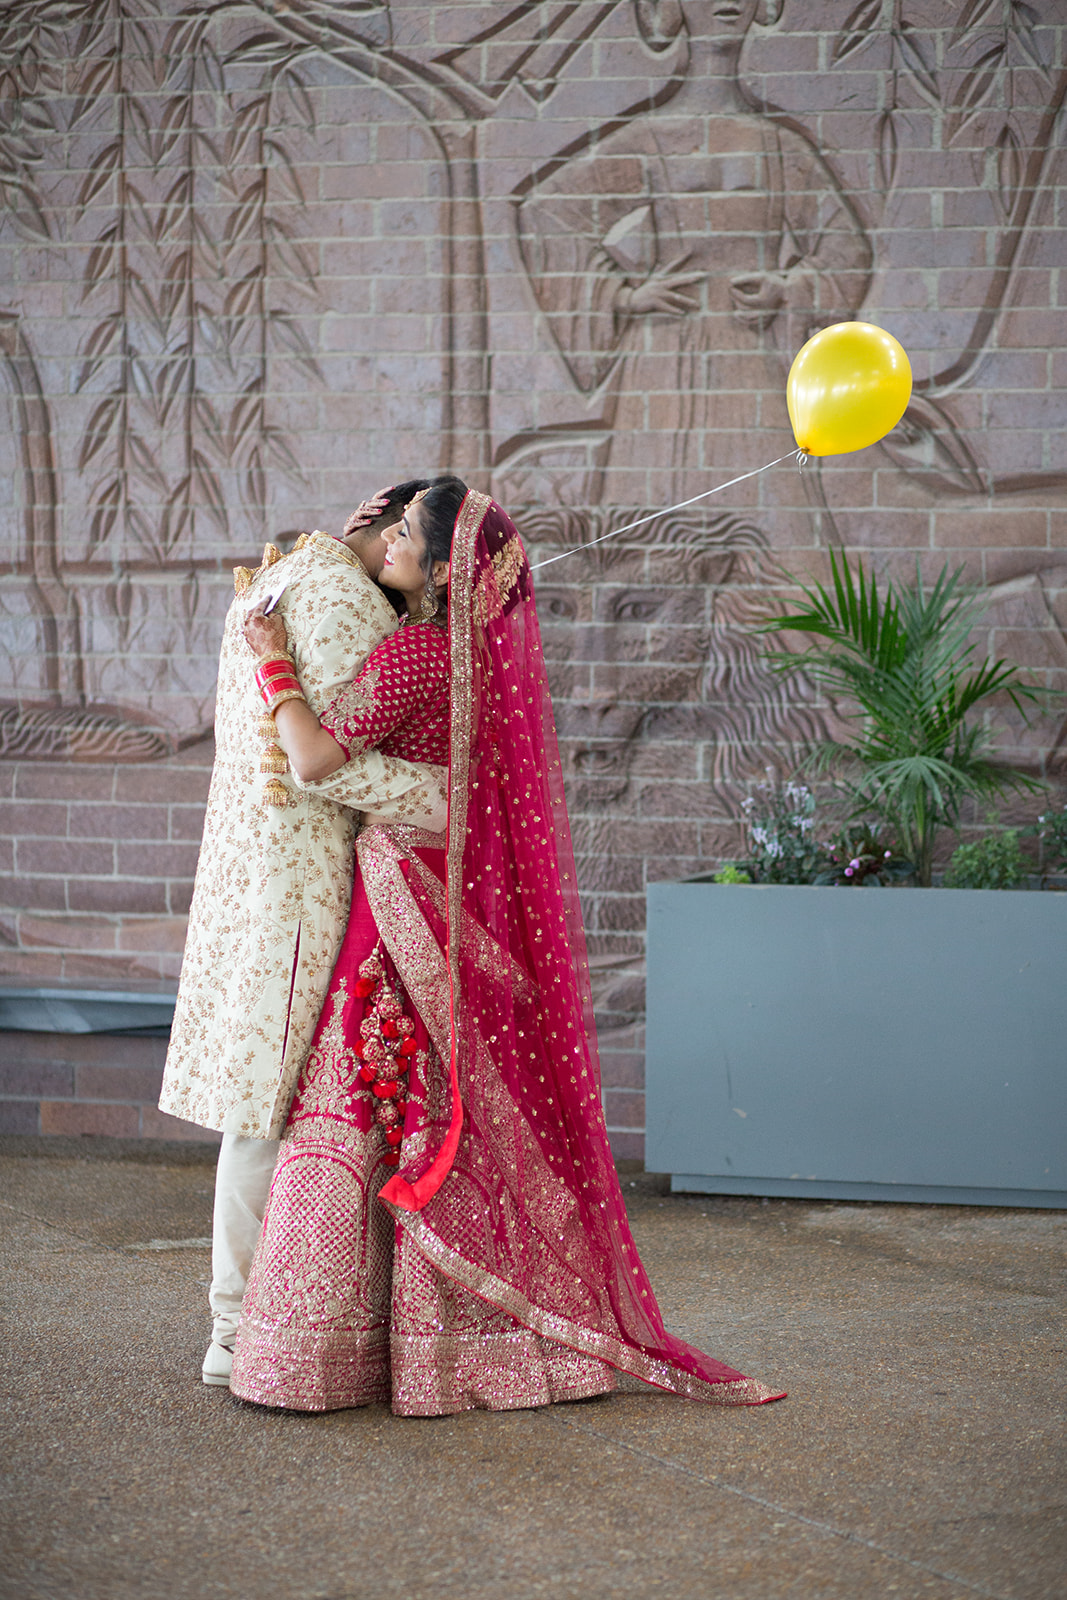 Le Cape Weddings - South Asian Wedding Sumeet and Chhavi - First Look S-9.jpg